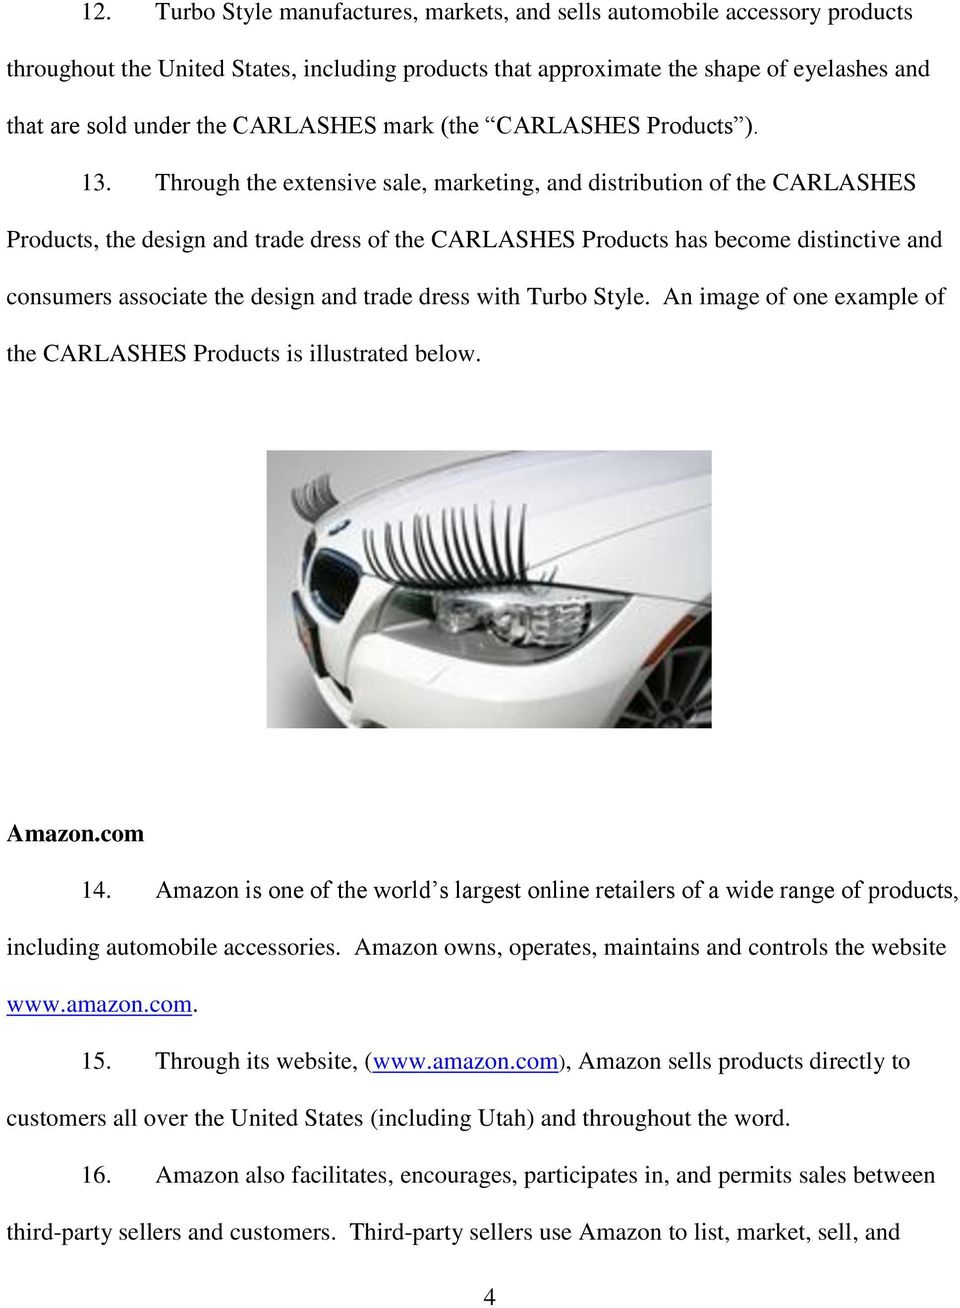 Through the extensive sale, marketing, and distribution of the CARLASHES Products, the design and trade dress of the CARLASHES Products has become distinctive and consumers associate the design and